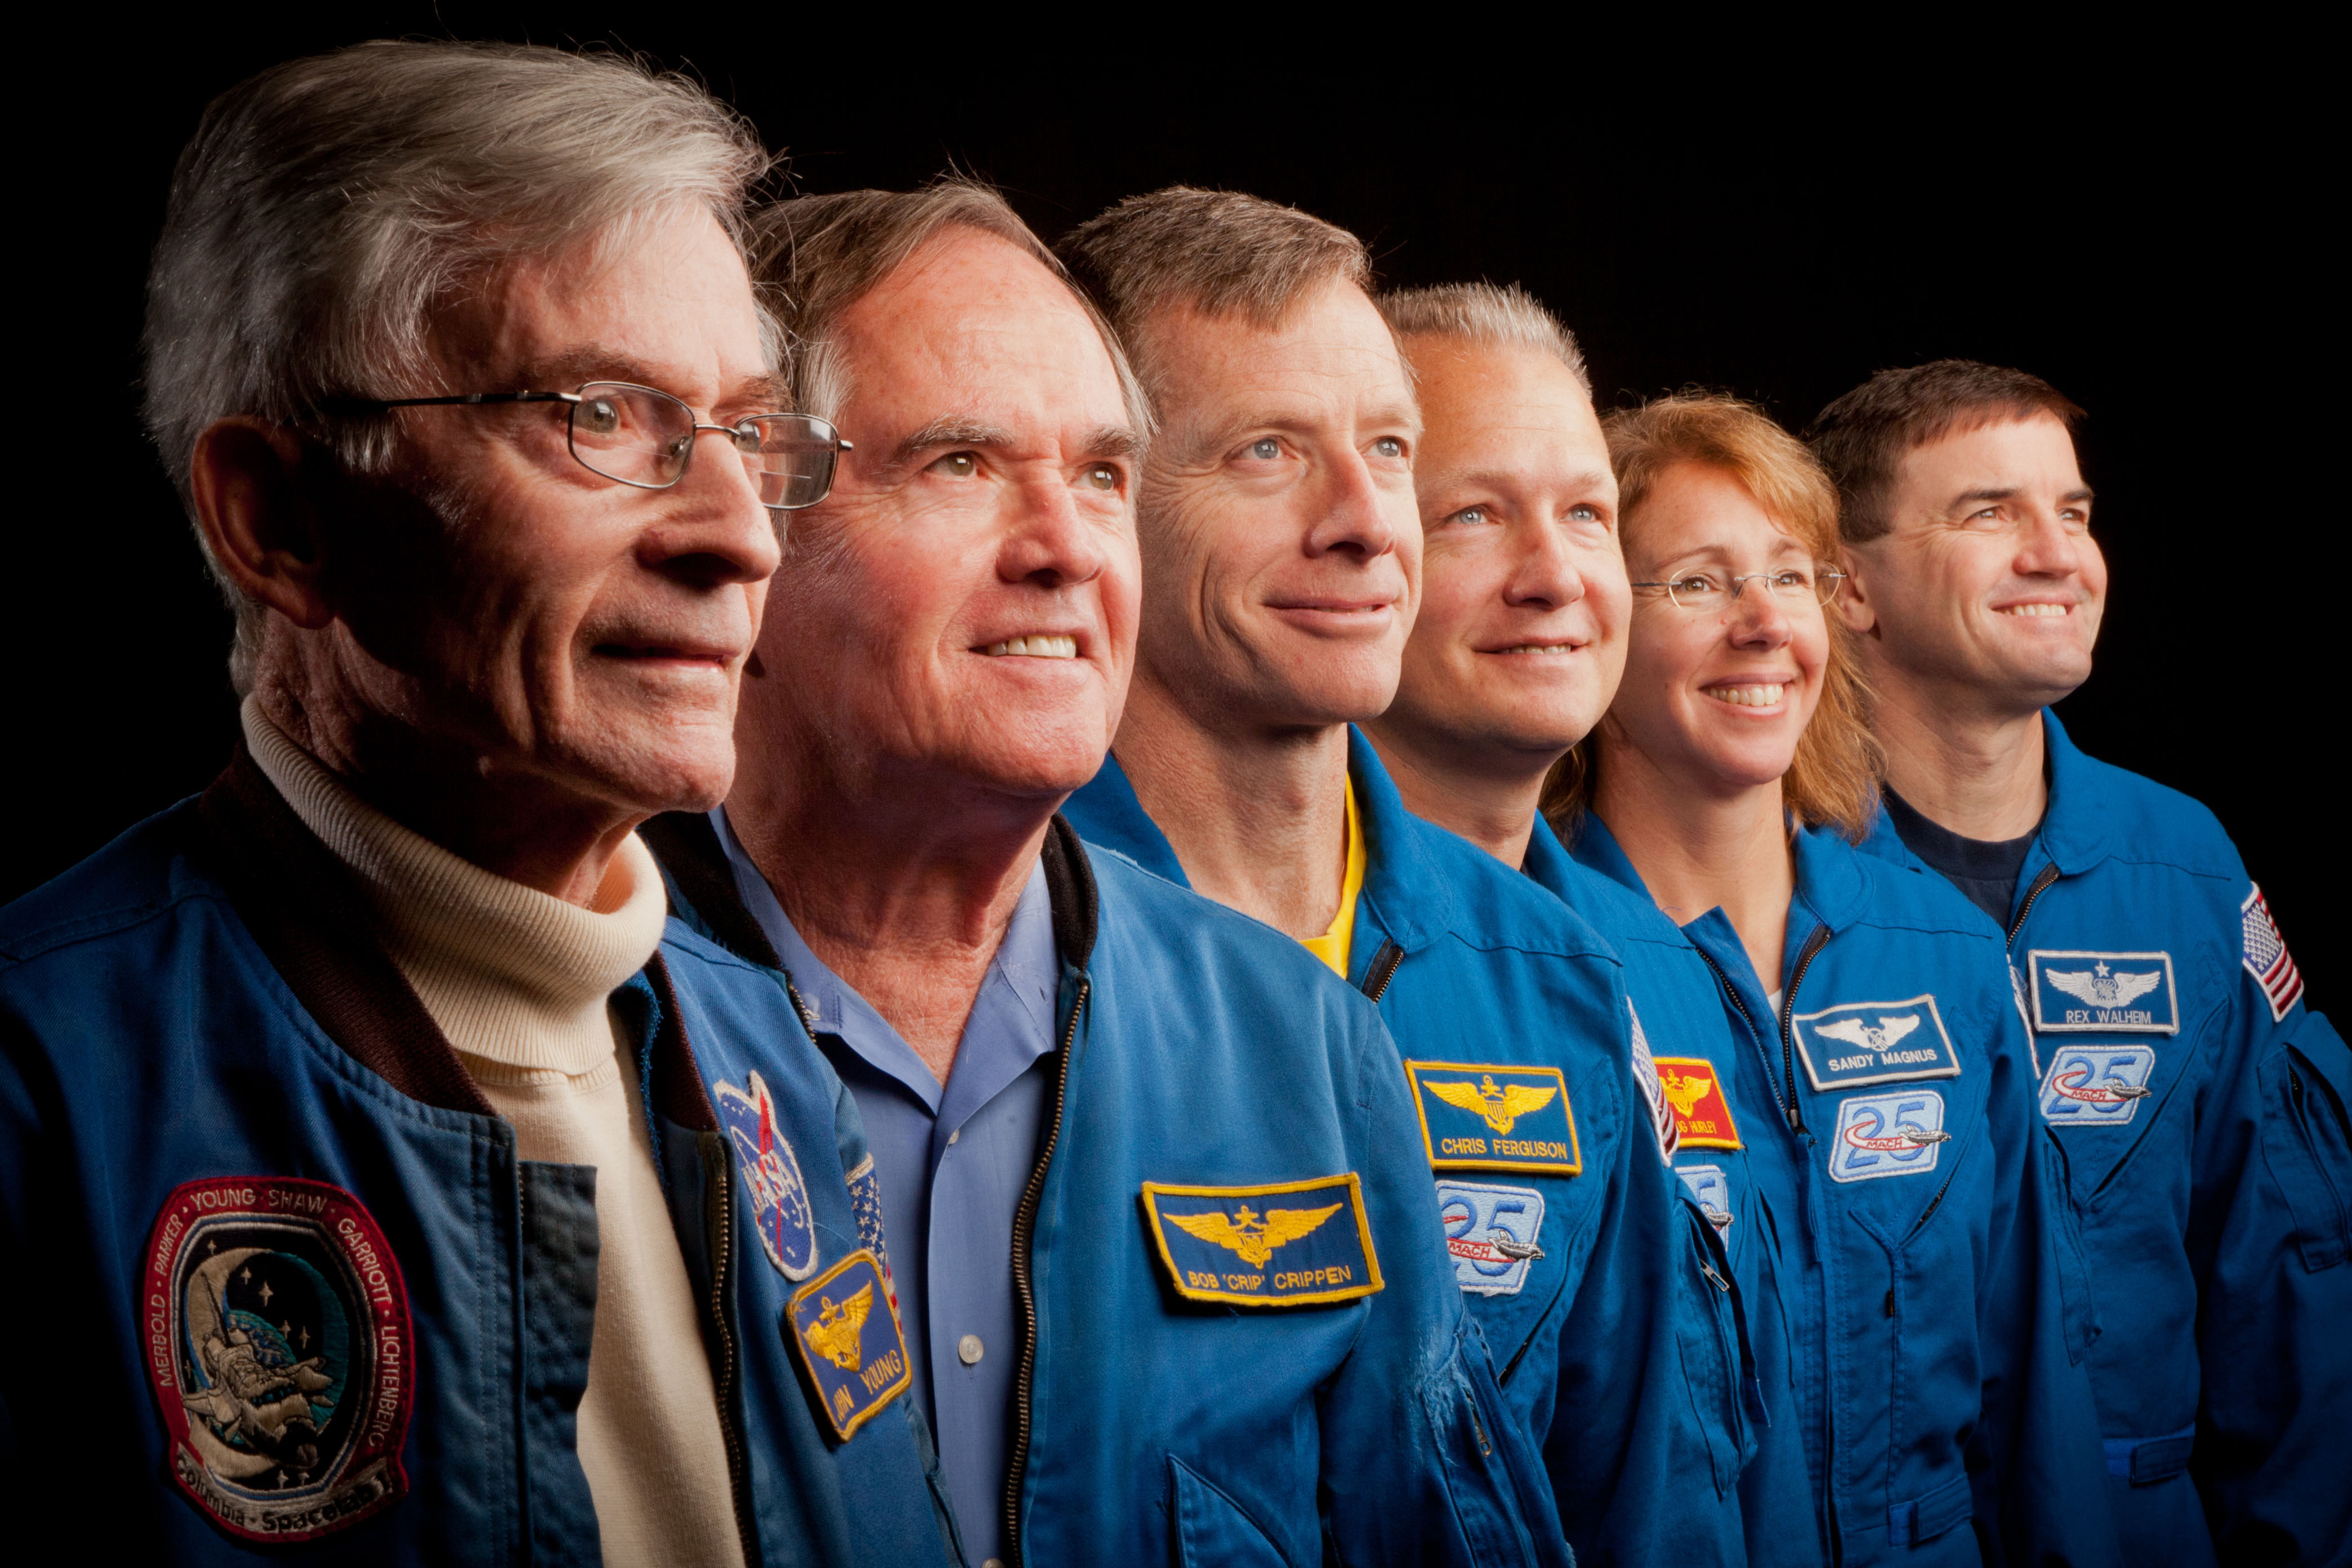 First & Last Space Shuttle Crews Meet for 'Bookend' Photos